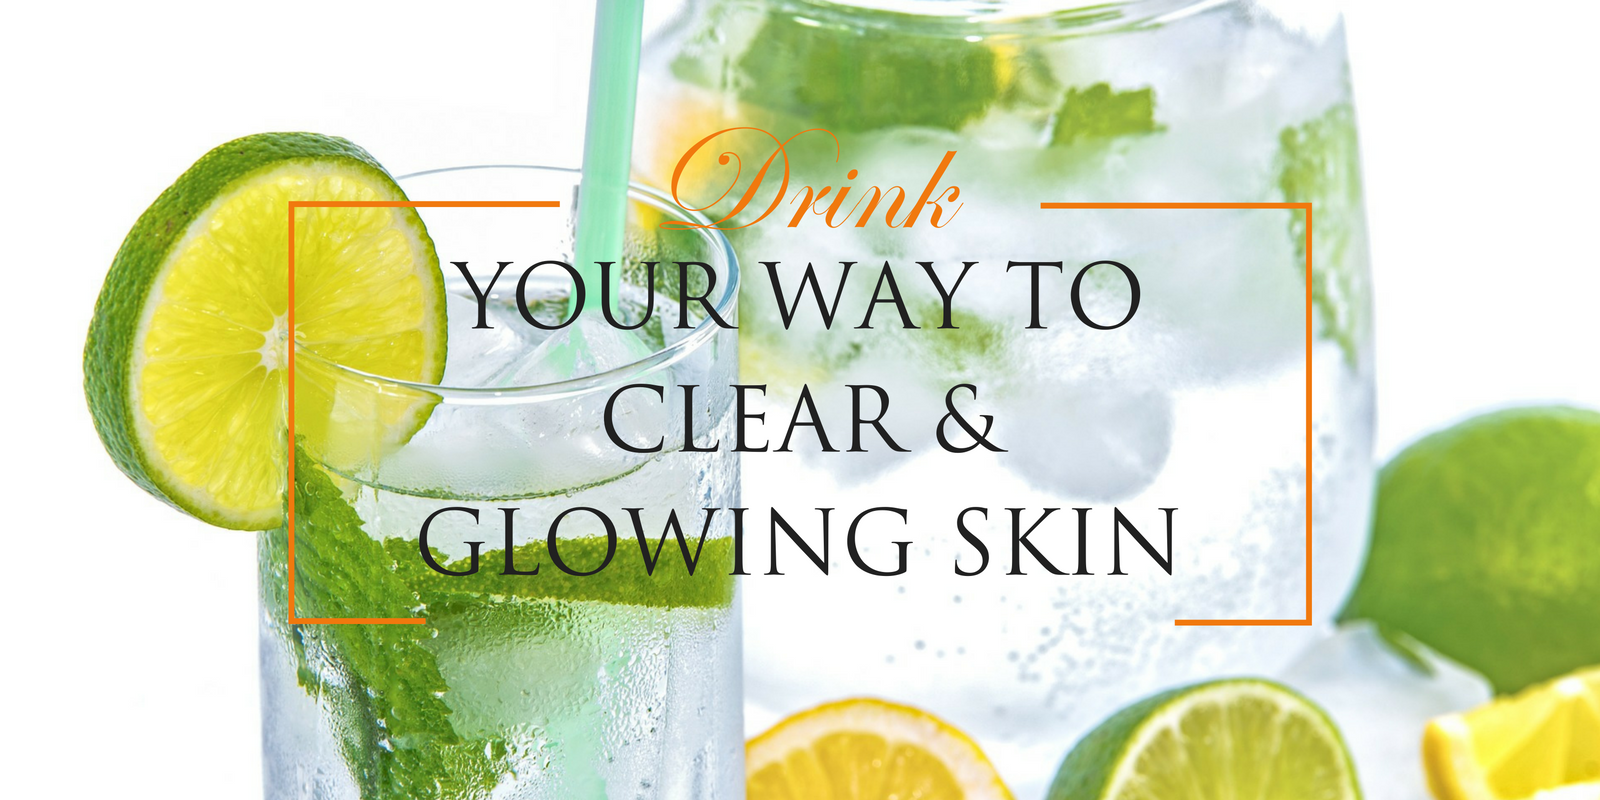 Drink Your Way to Clear Glowing Skin - Pure Fiji